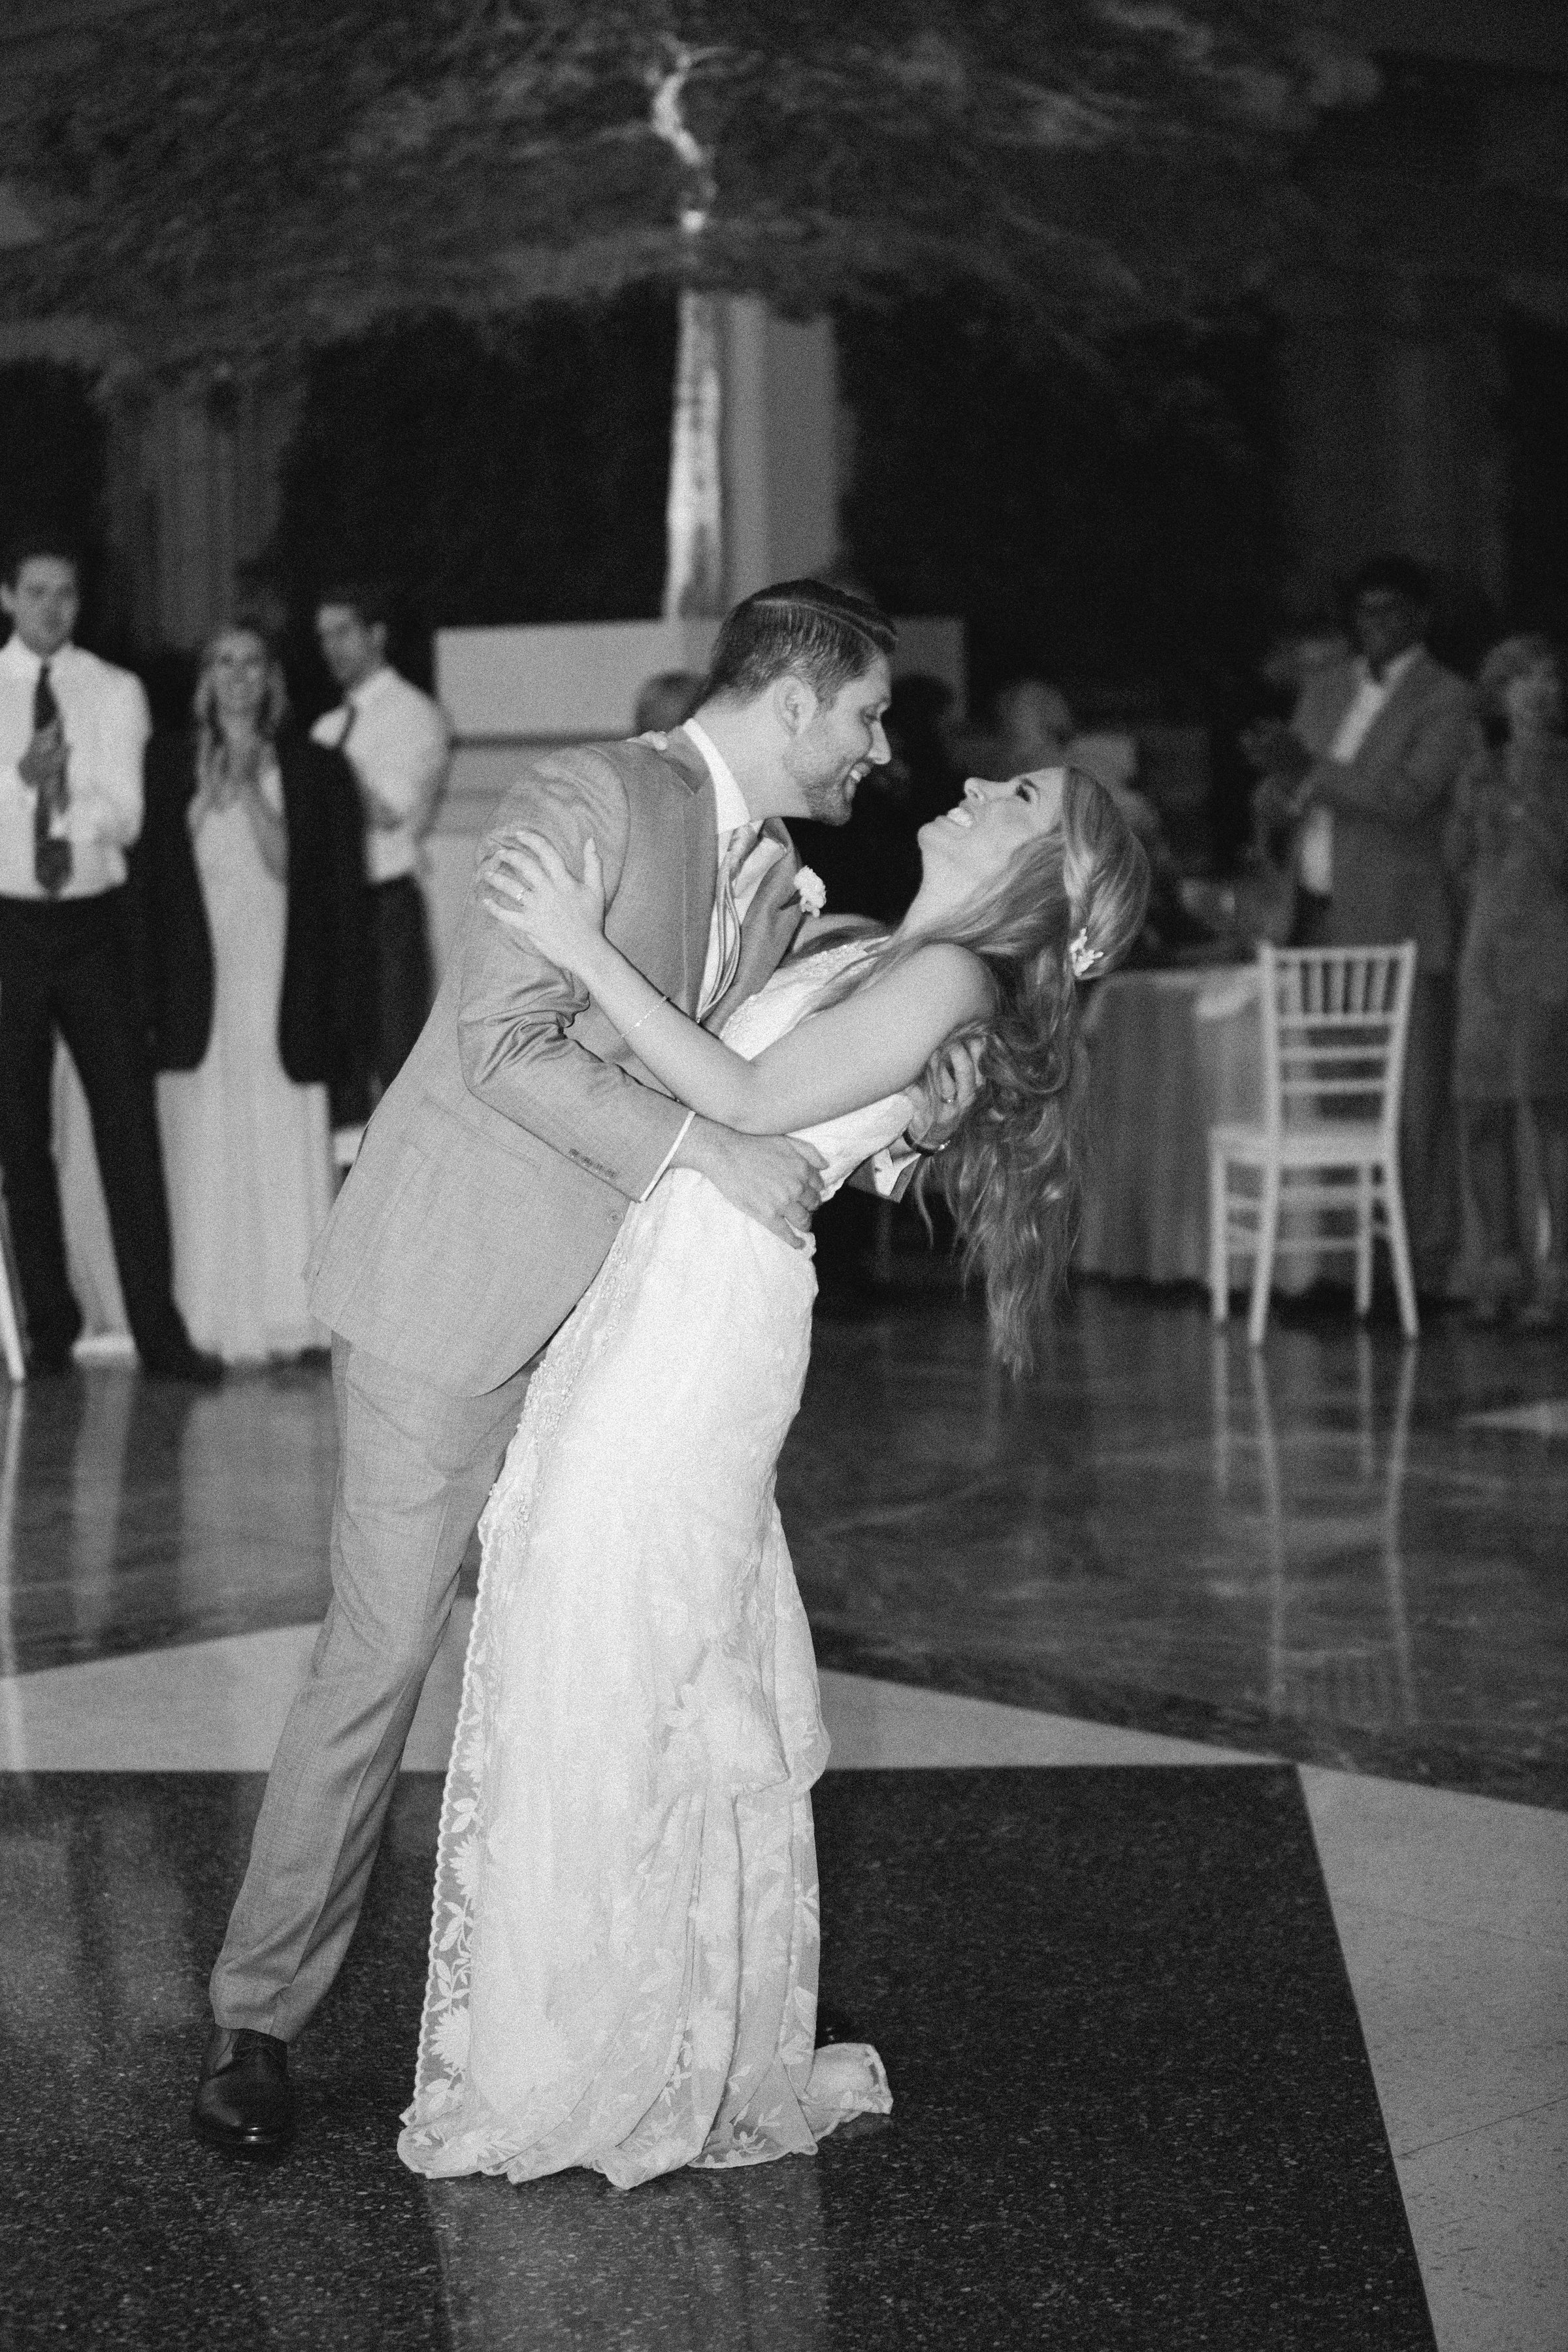 Couple dipping during their first dance at their wedding